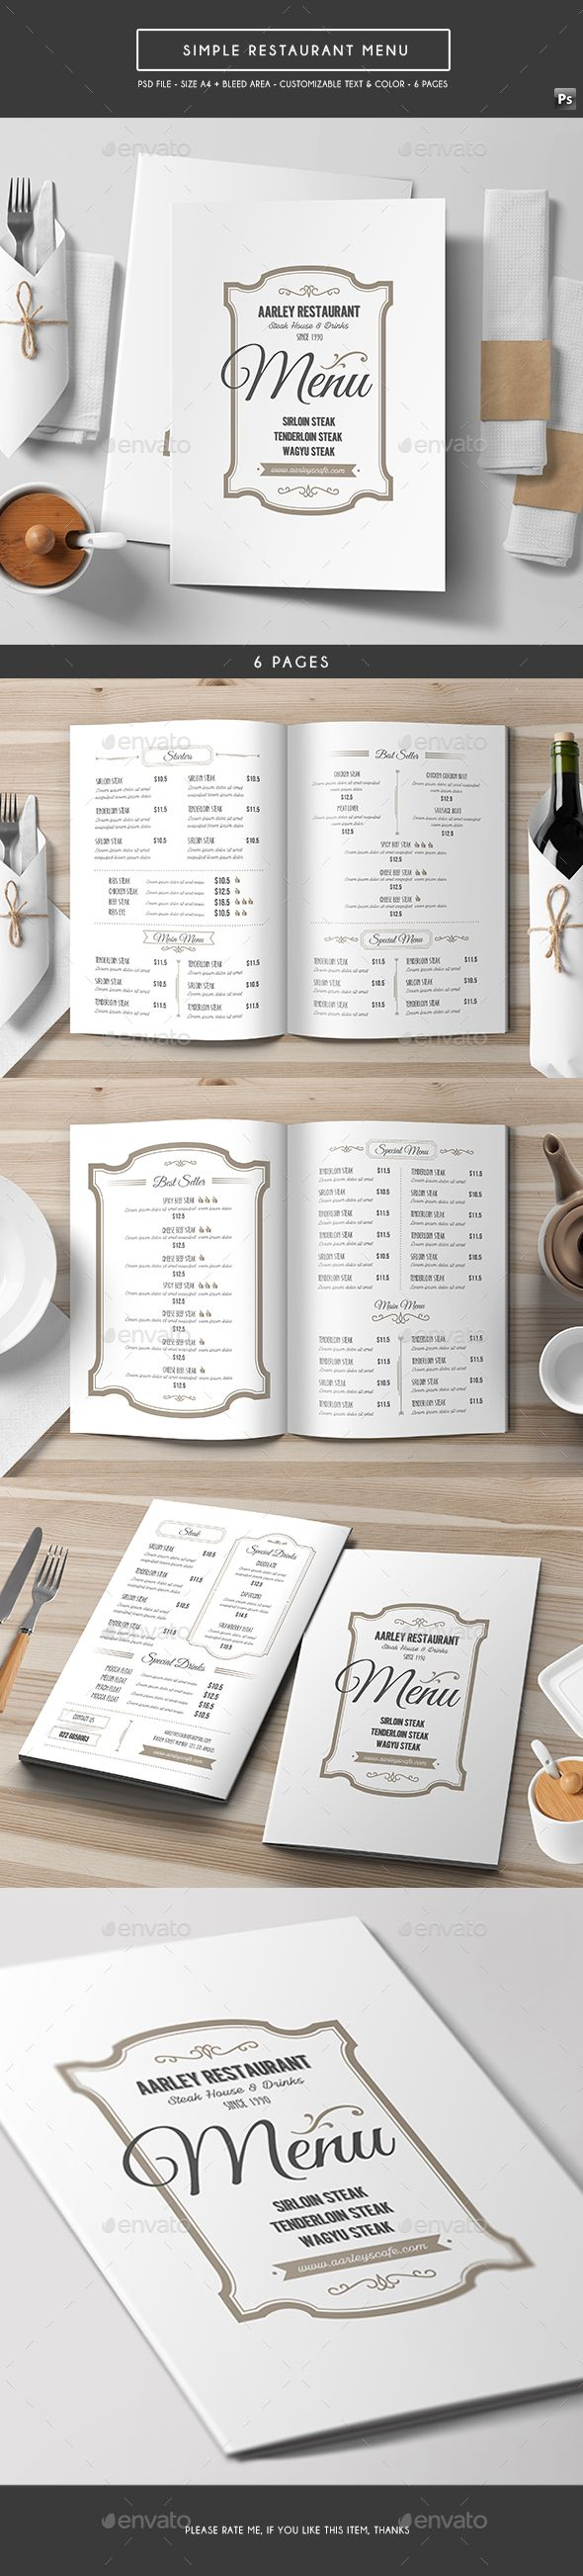 Simple Restaurant Menu  PSD Template • Download ➝ https://graphicriver.net/item/simple-restaurant-menu/17165297?ref=pxcr